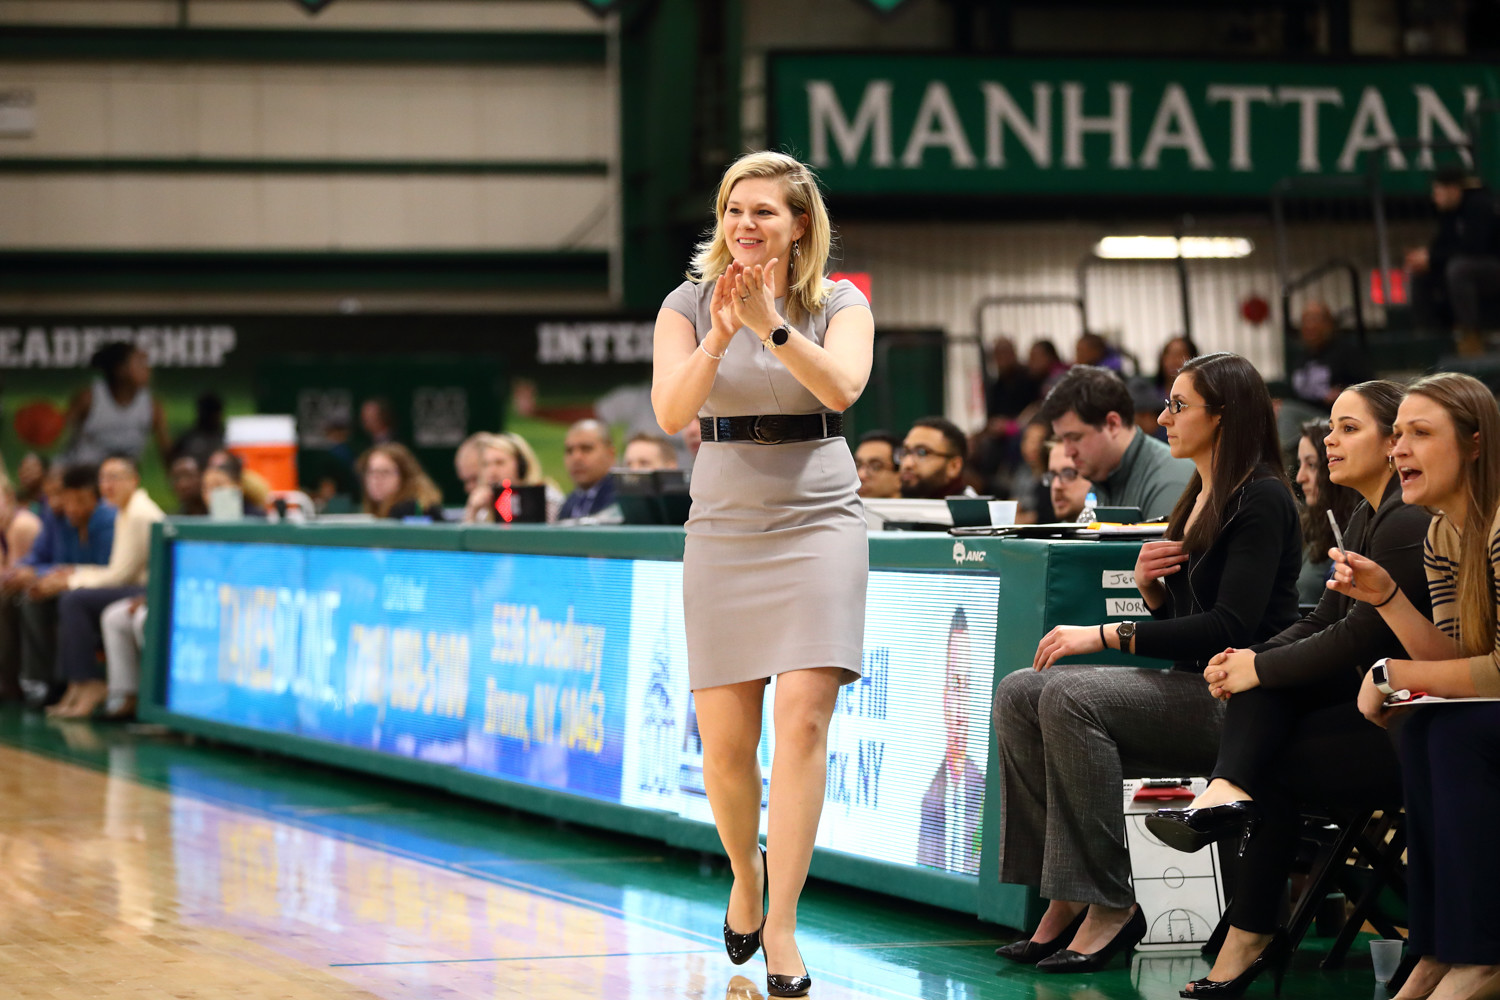 Manhattan head coach Heather Vulin has reason for optimism next season after a turnaround year for the Jaspers.